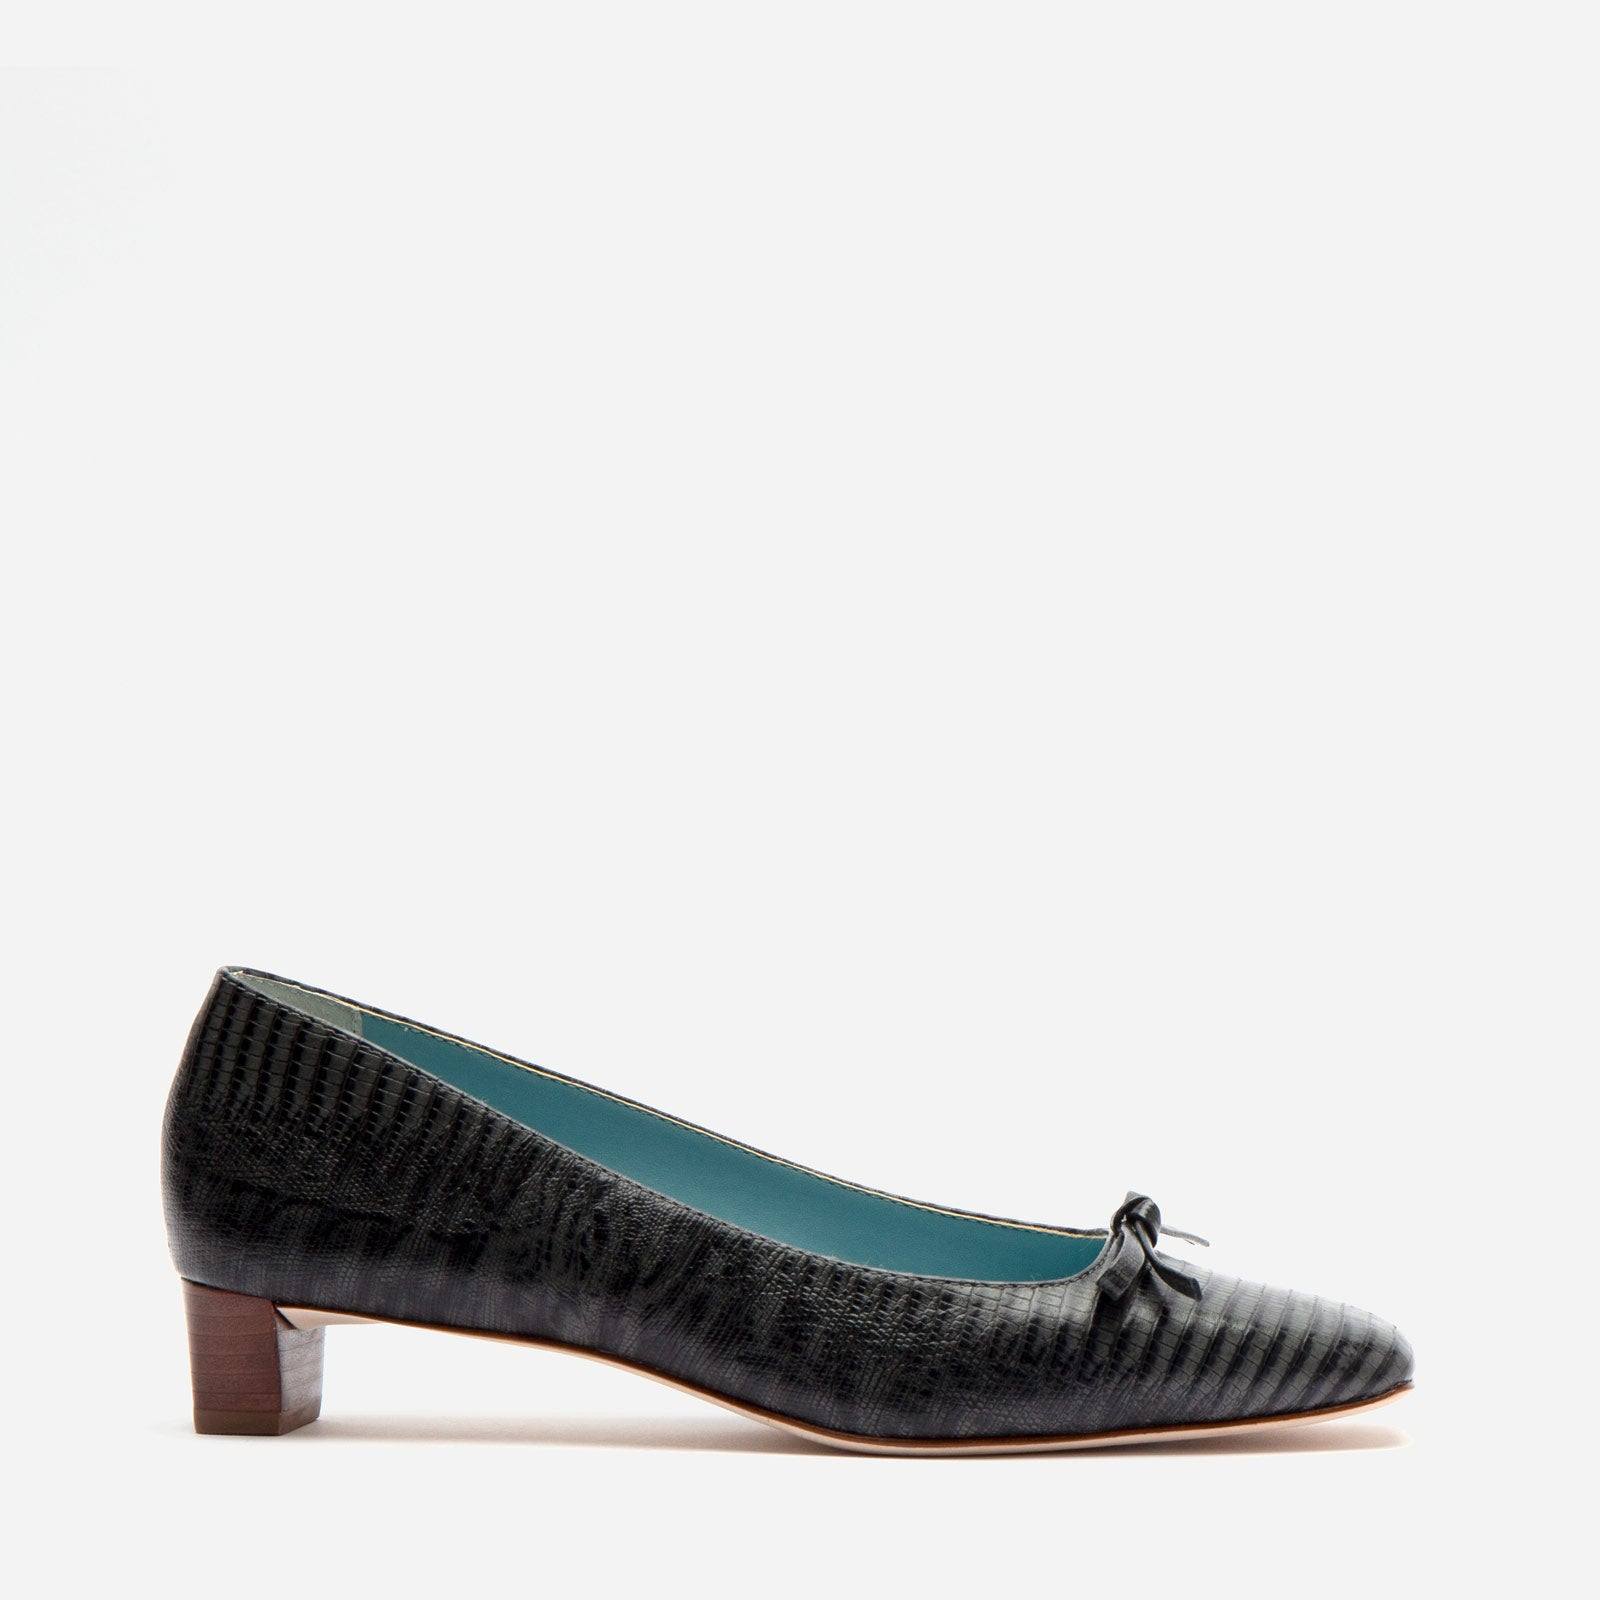 Mary Mini Block Heel Lizard Embossed Dark Grey - Frances Valentine